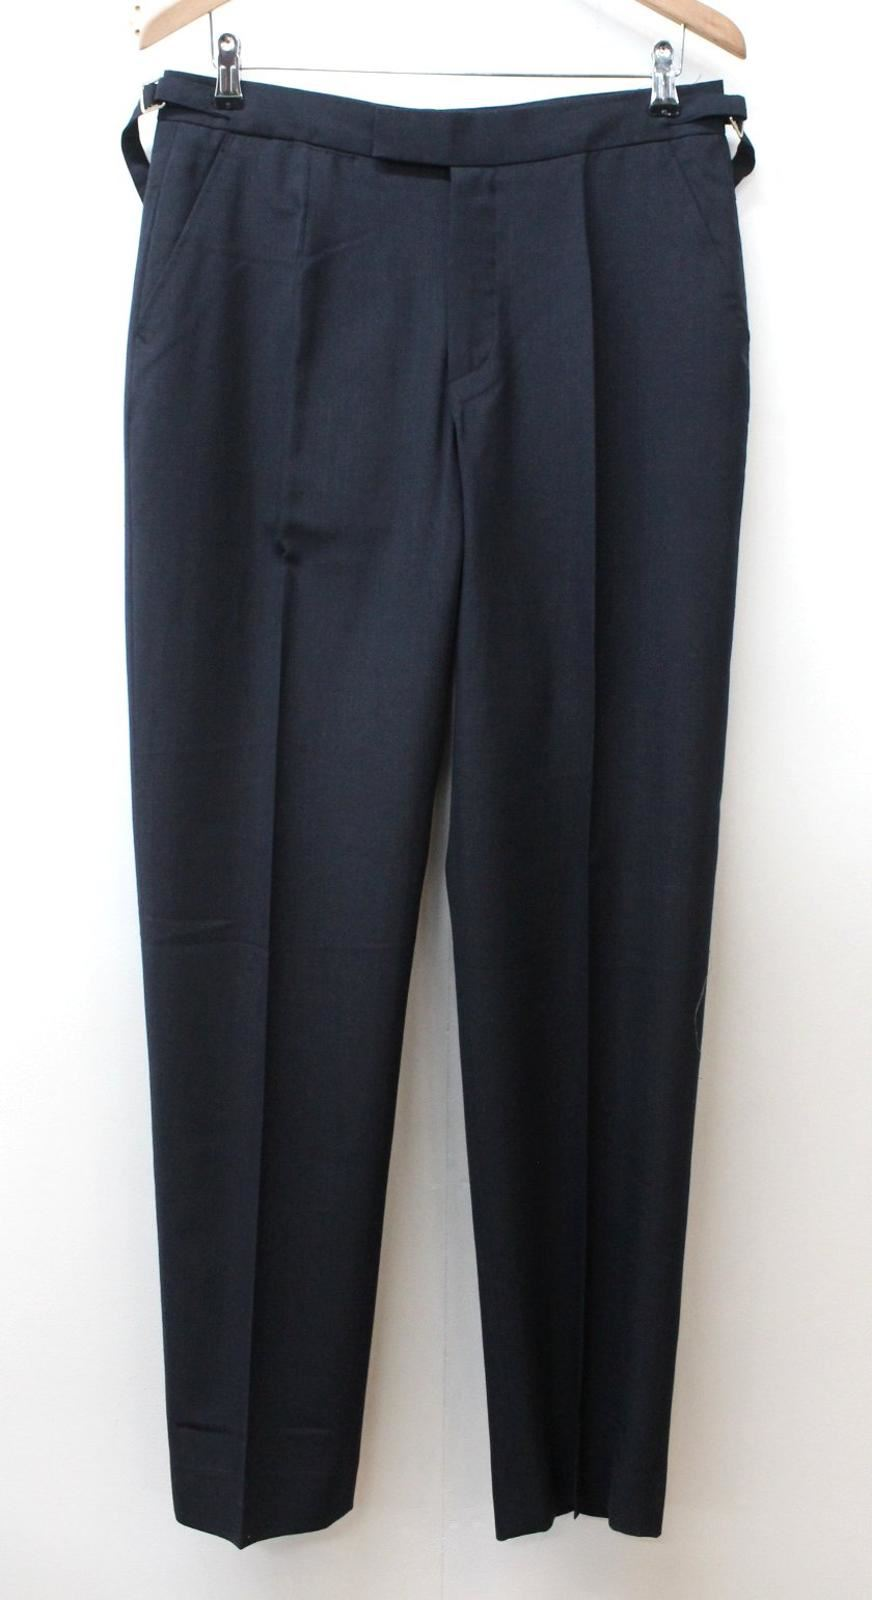 Men's Navy bluee Tapered Leg Style Pleated Front Formal Trousers Size W30 L31